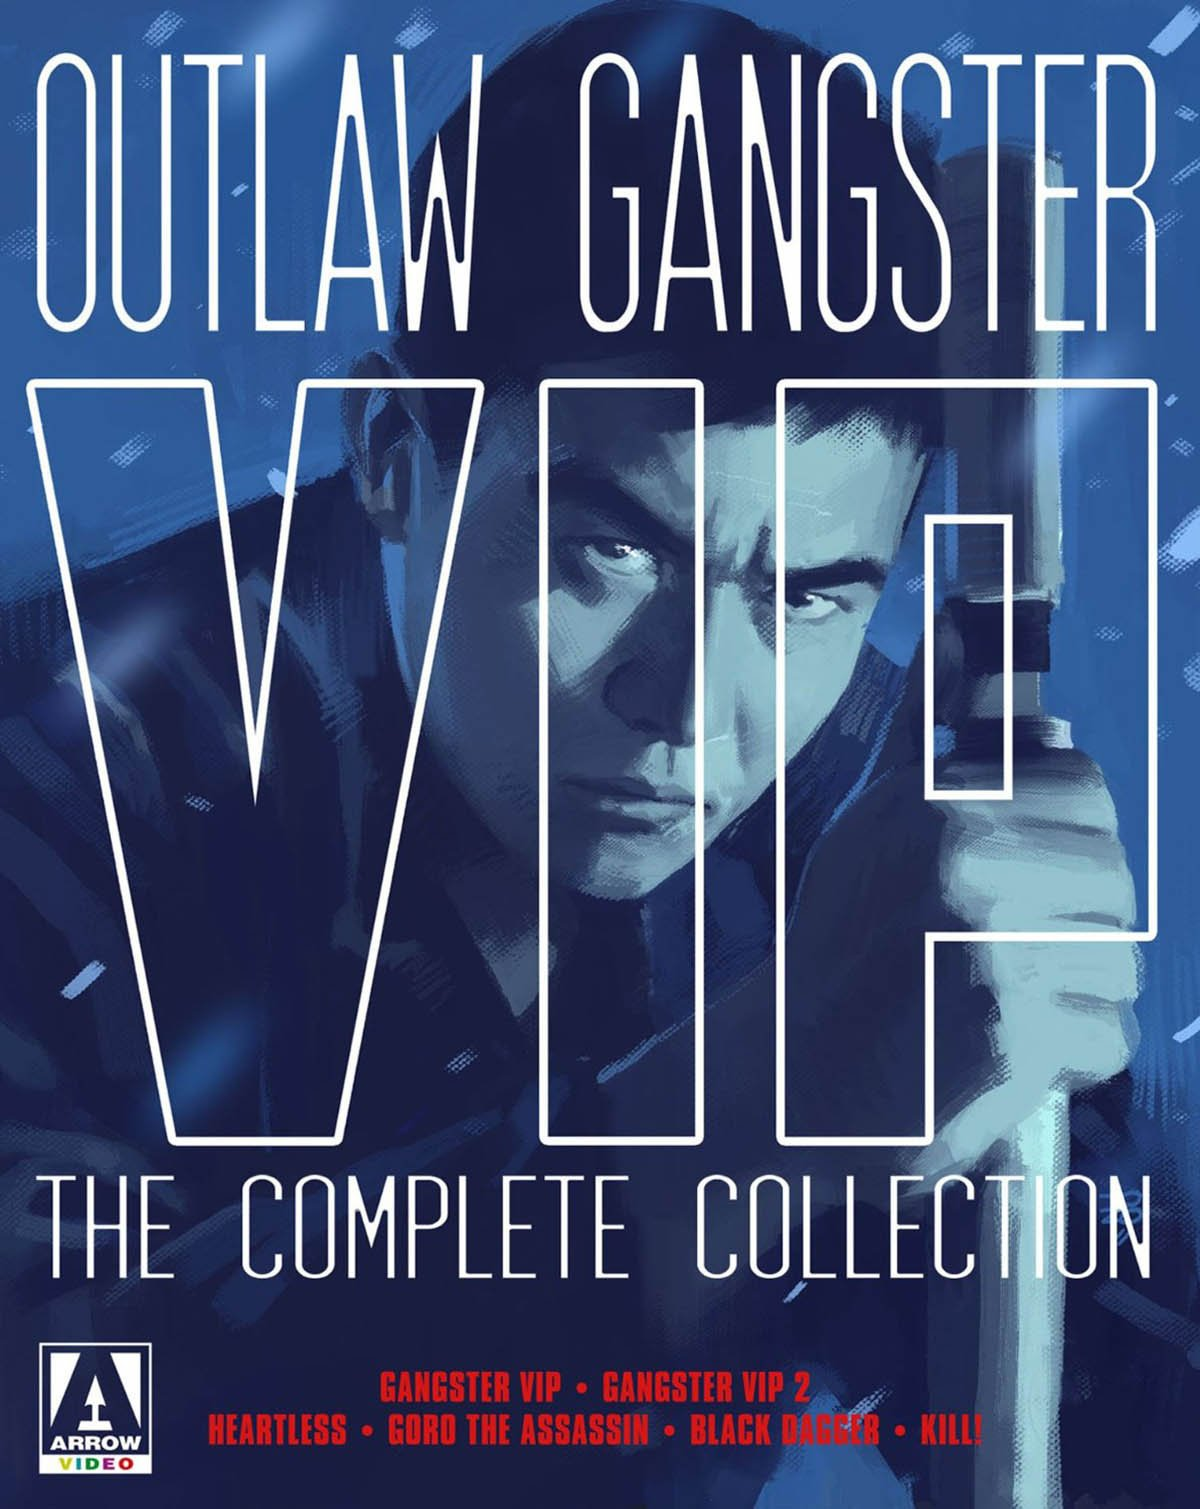 Outlaw Gangster VIP: The Complete Collection